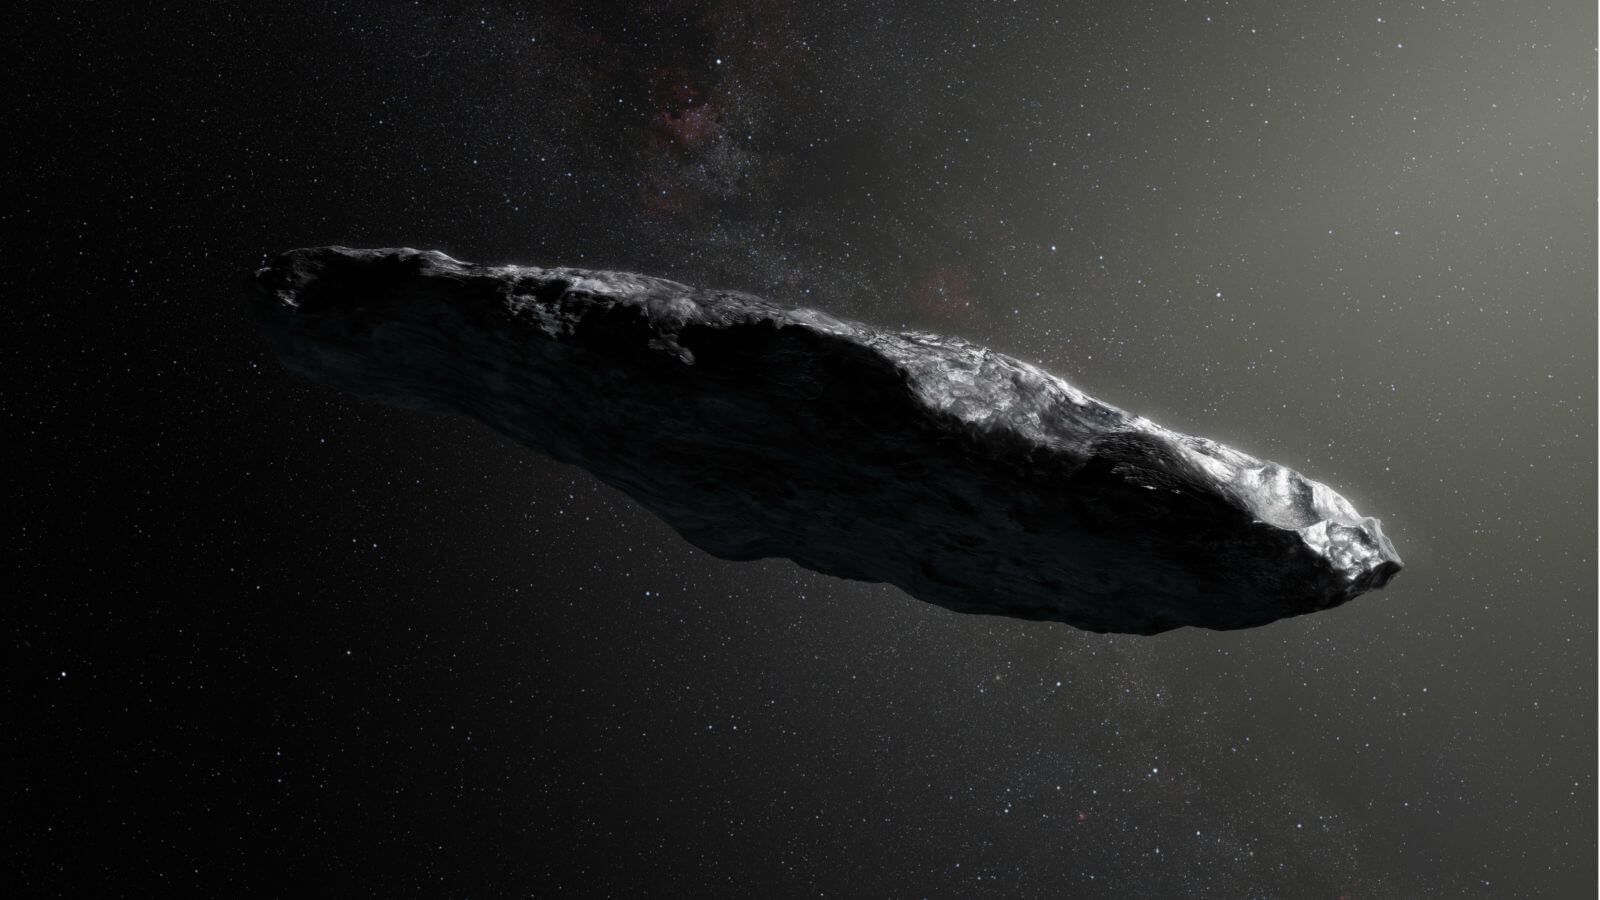 This Strange Object is the First Interstellar Asteroid Ever Observed